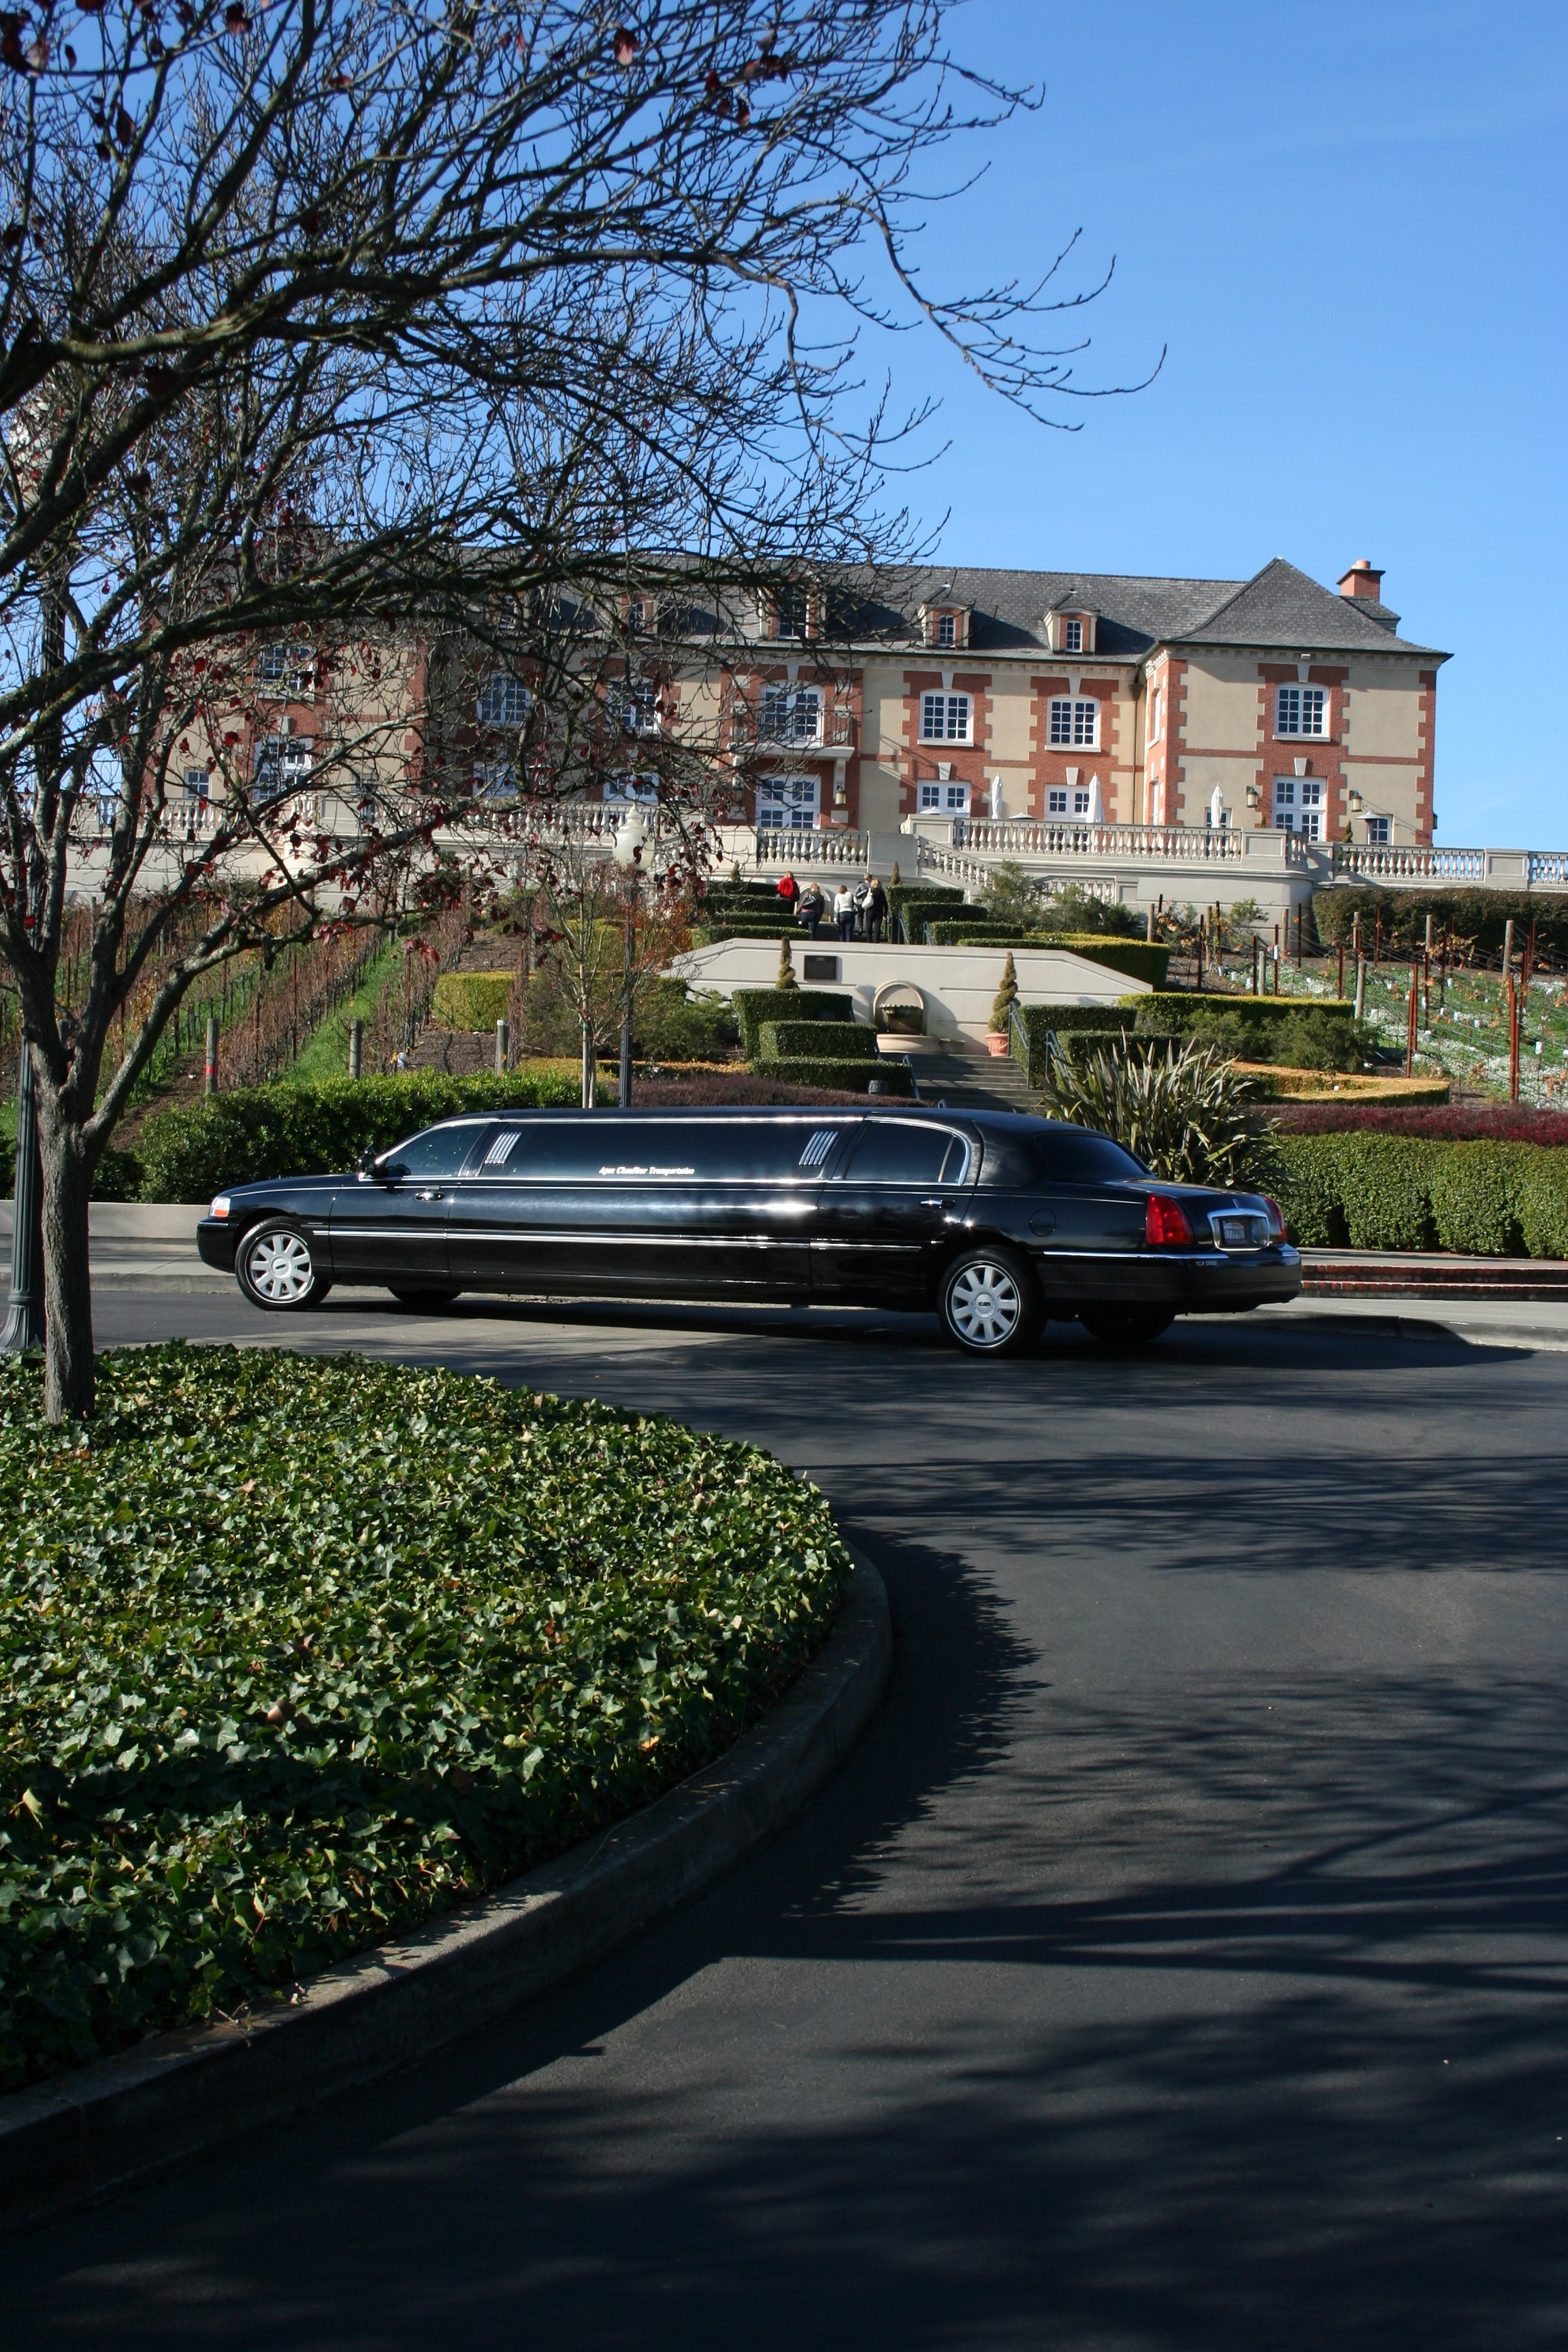 Domaine Carneros Winery LimousineTour